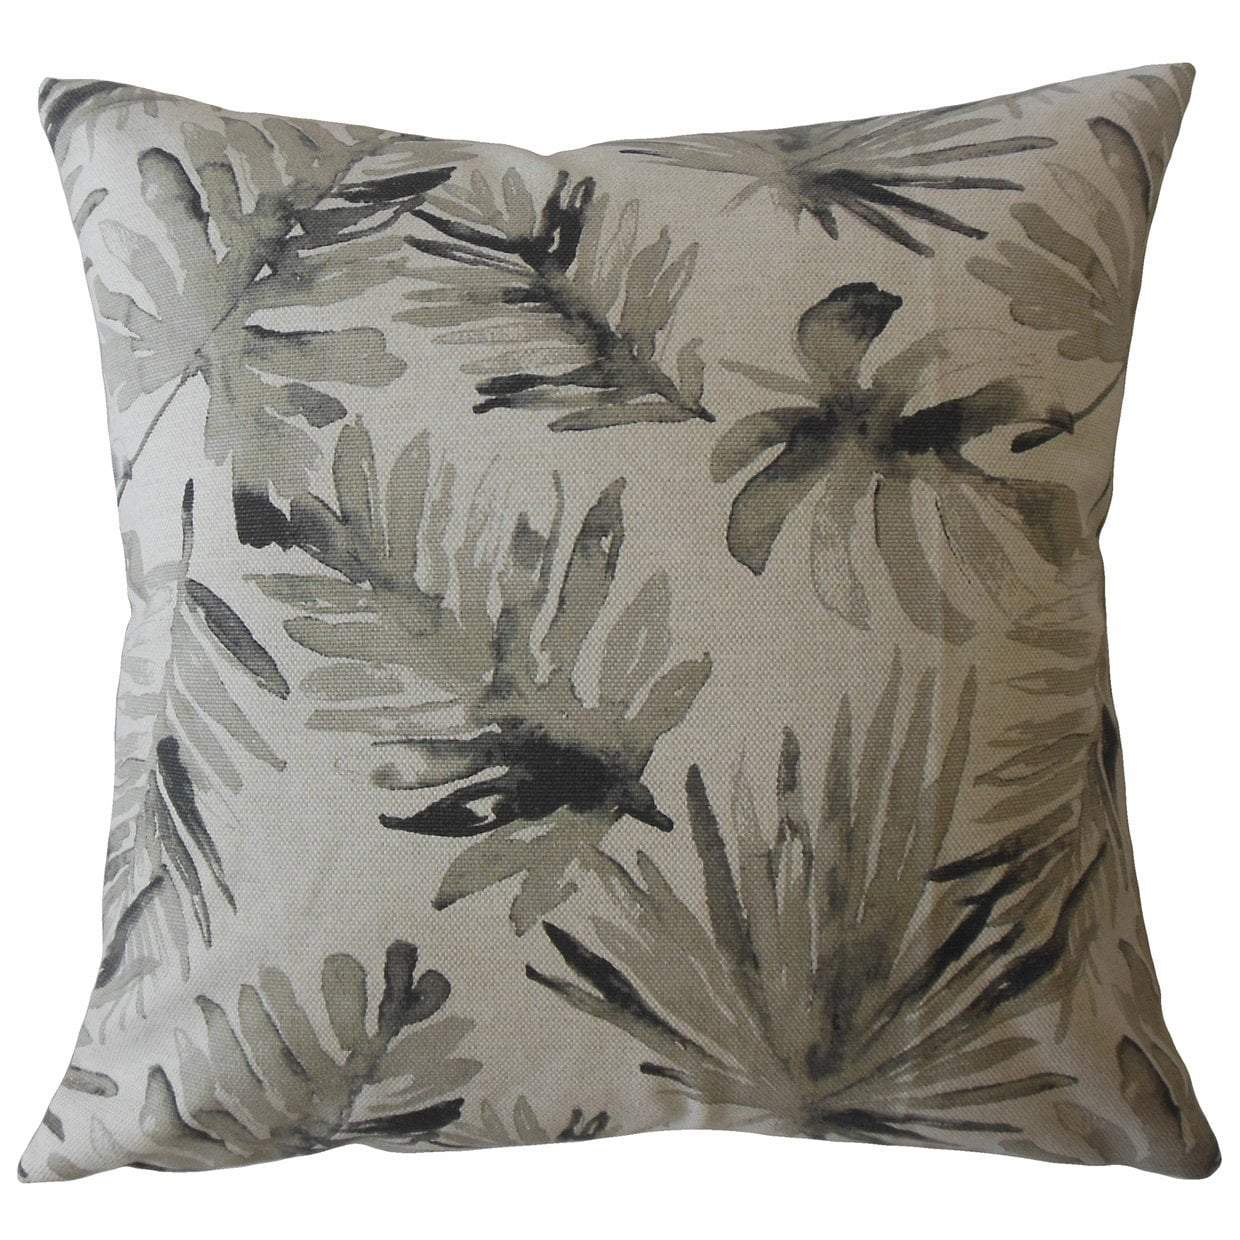 Black Cotton Floral Contemporary Throw Pillow Cover